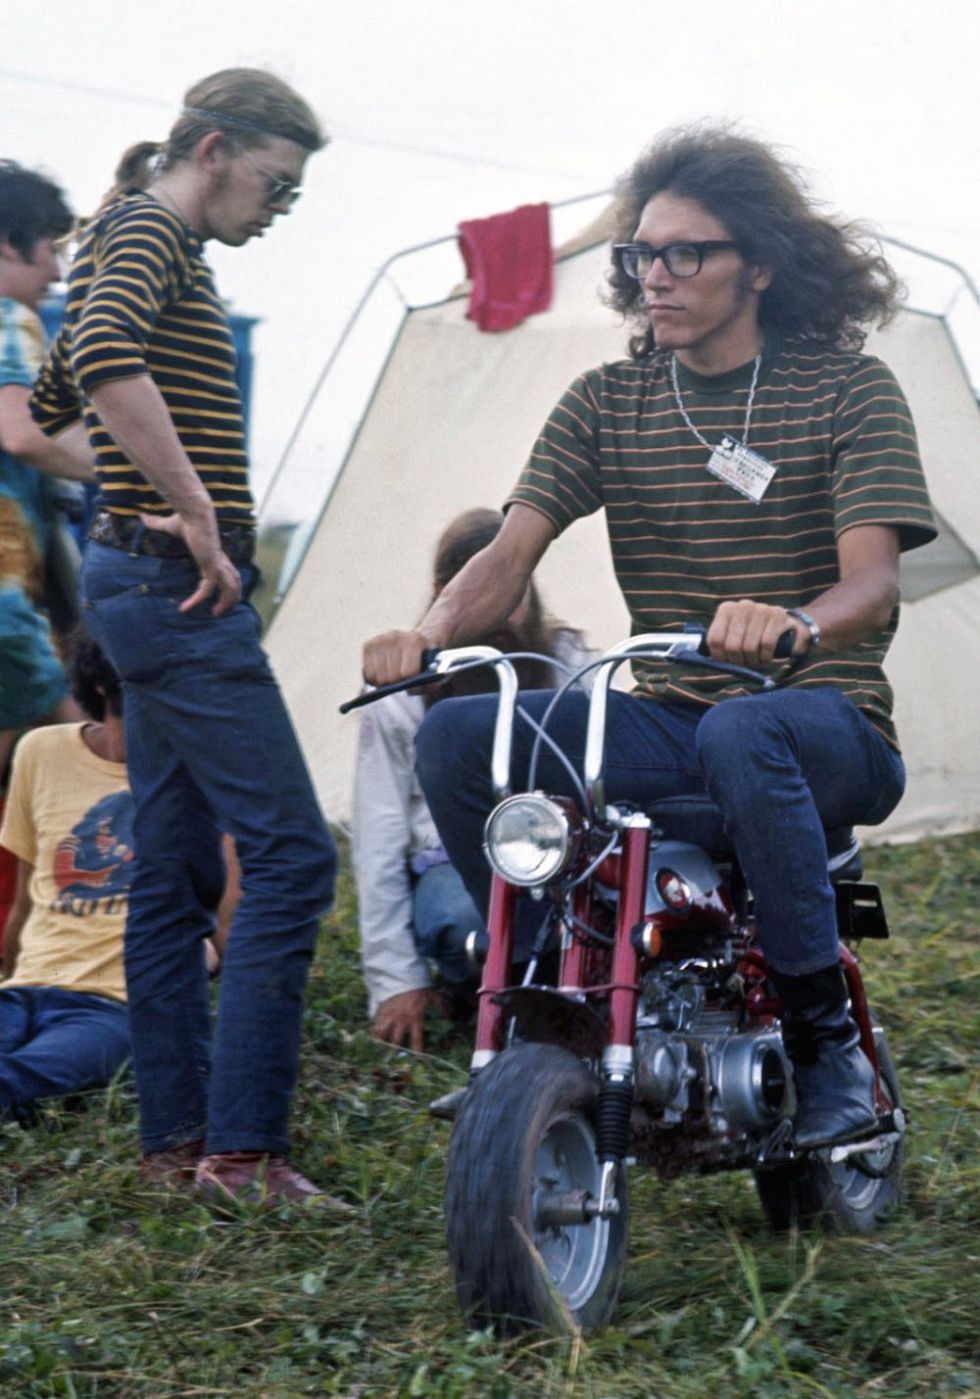 Member of band 'Jefferson Airplane' riding a motorcycle